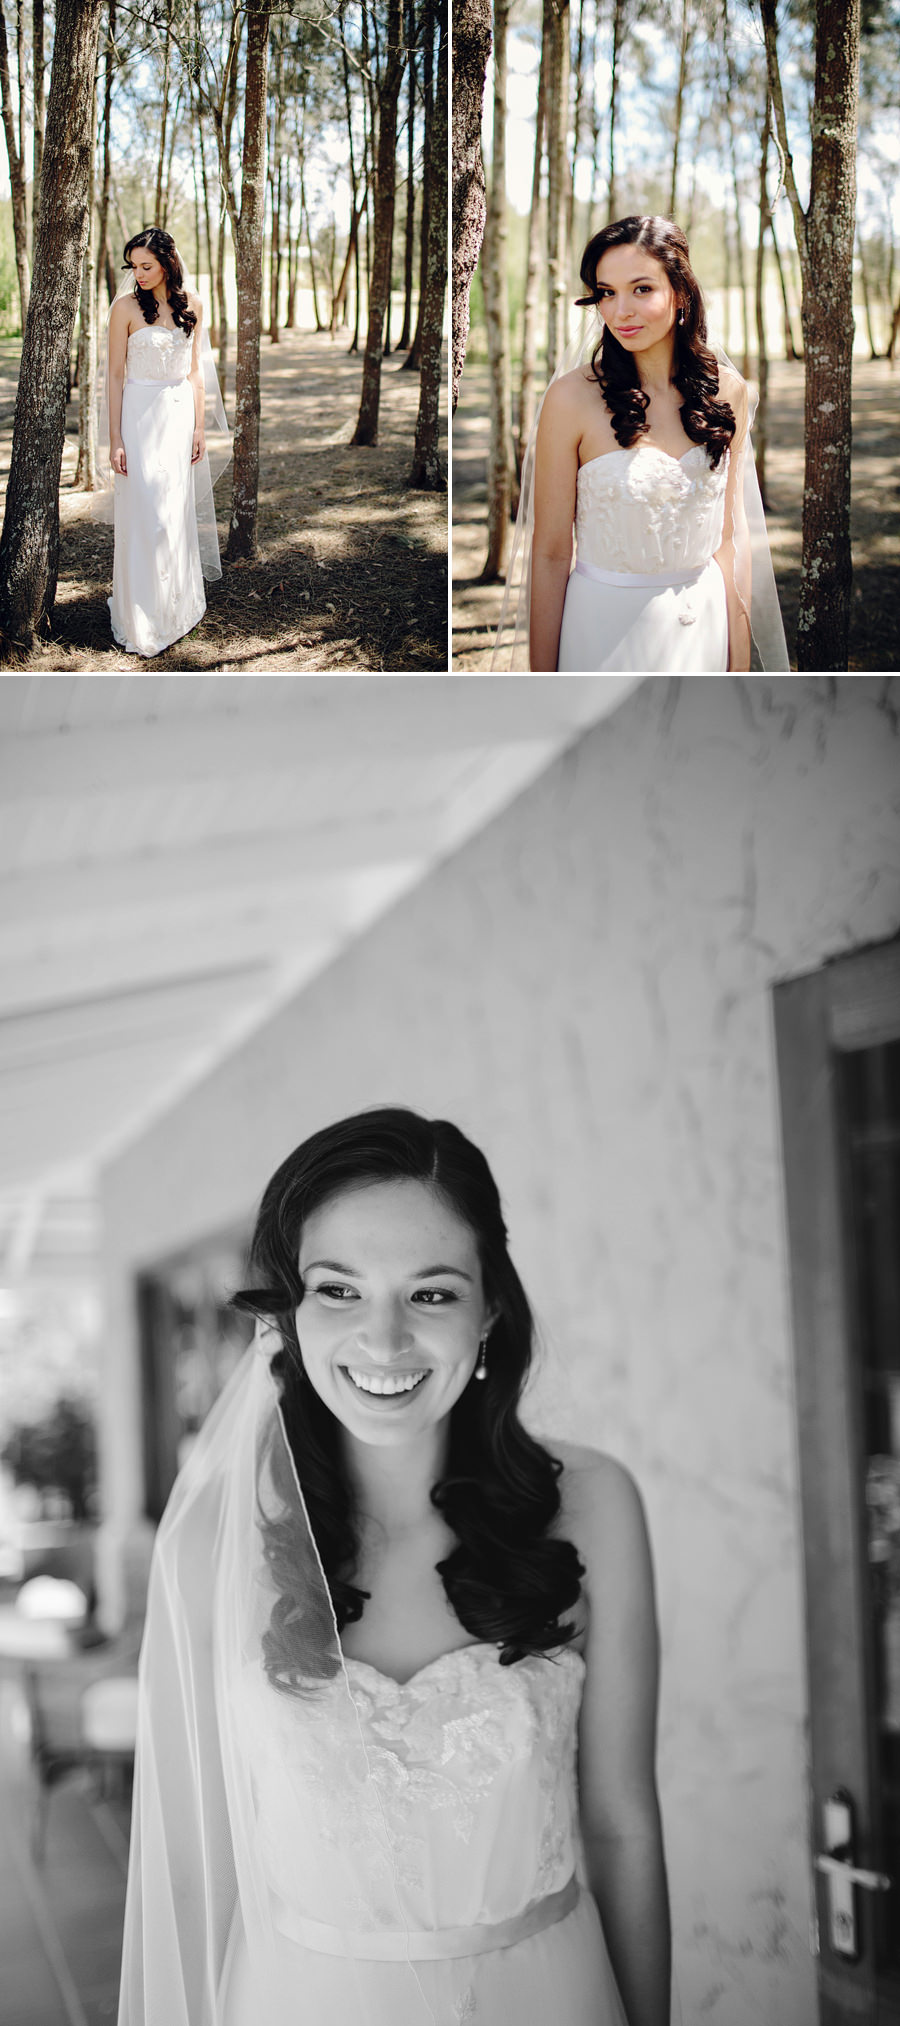 Fine Art Wedding Photographers: Bridal portraits